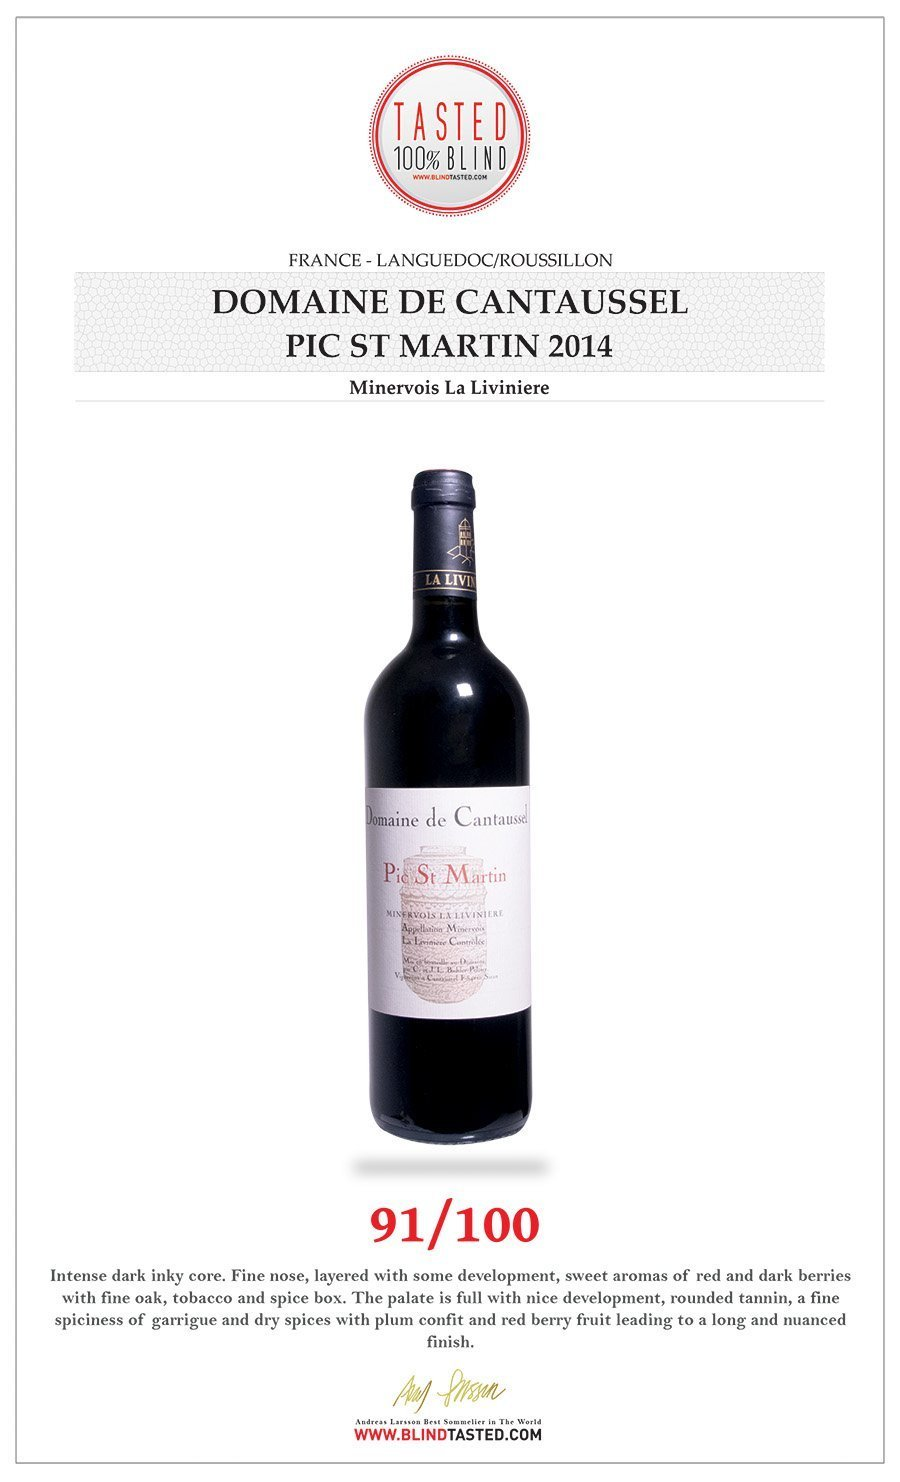 Domaine de Cantaussel - Pic St Martin - Tasted 100% blind